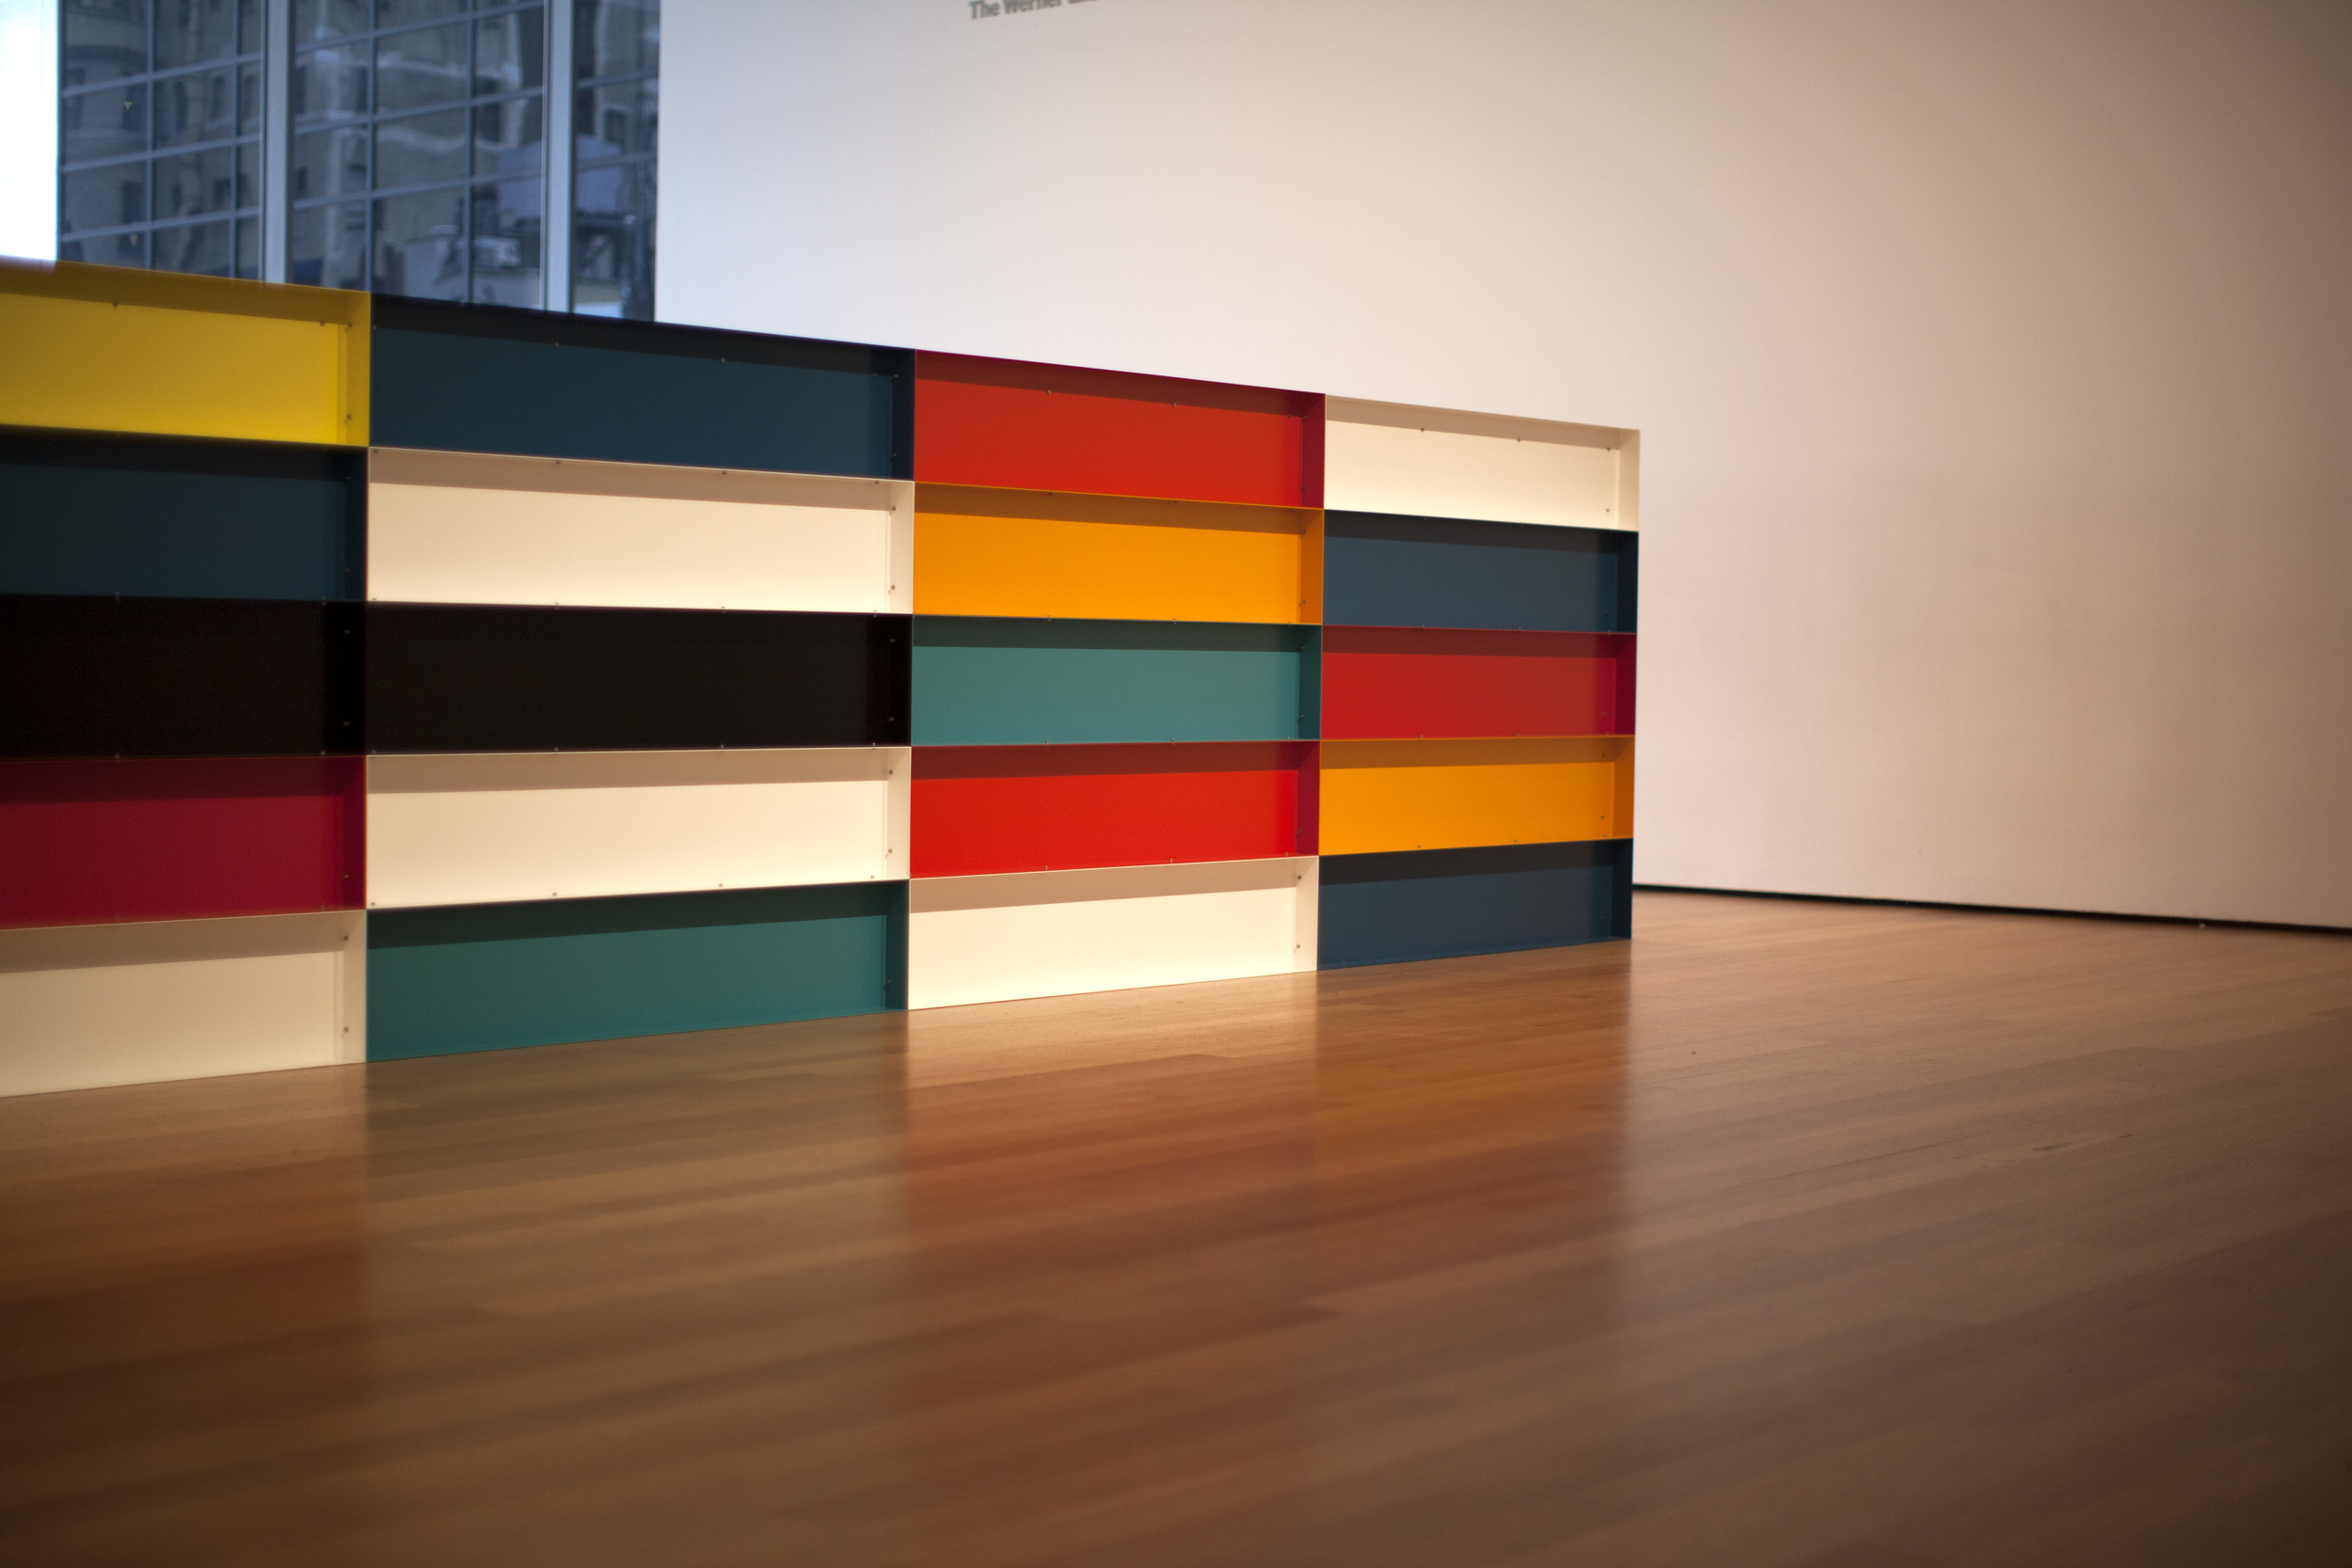 Donald Judd,  Untitled , 1985, enameled aluminum © Judd Foundation. Licensed by VAGA, New York, NY. Photo by Maggie Meiners